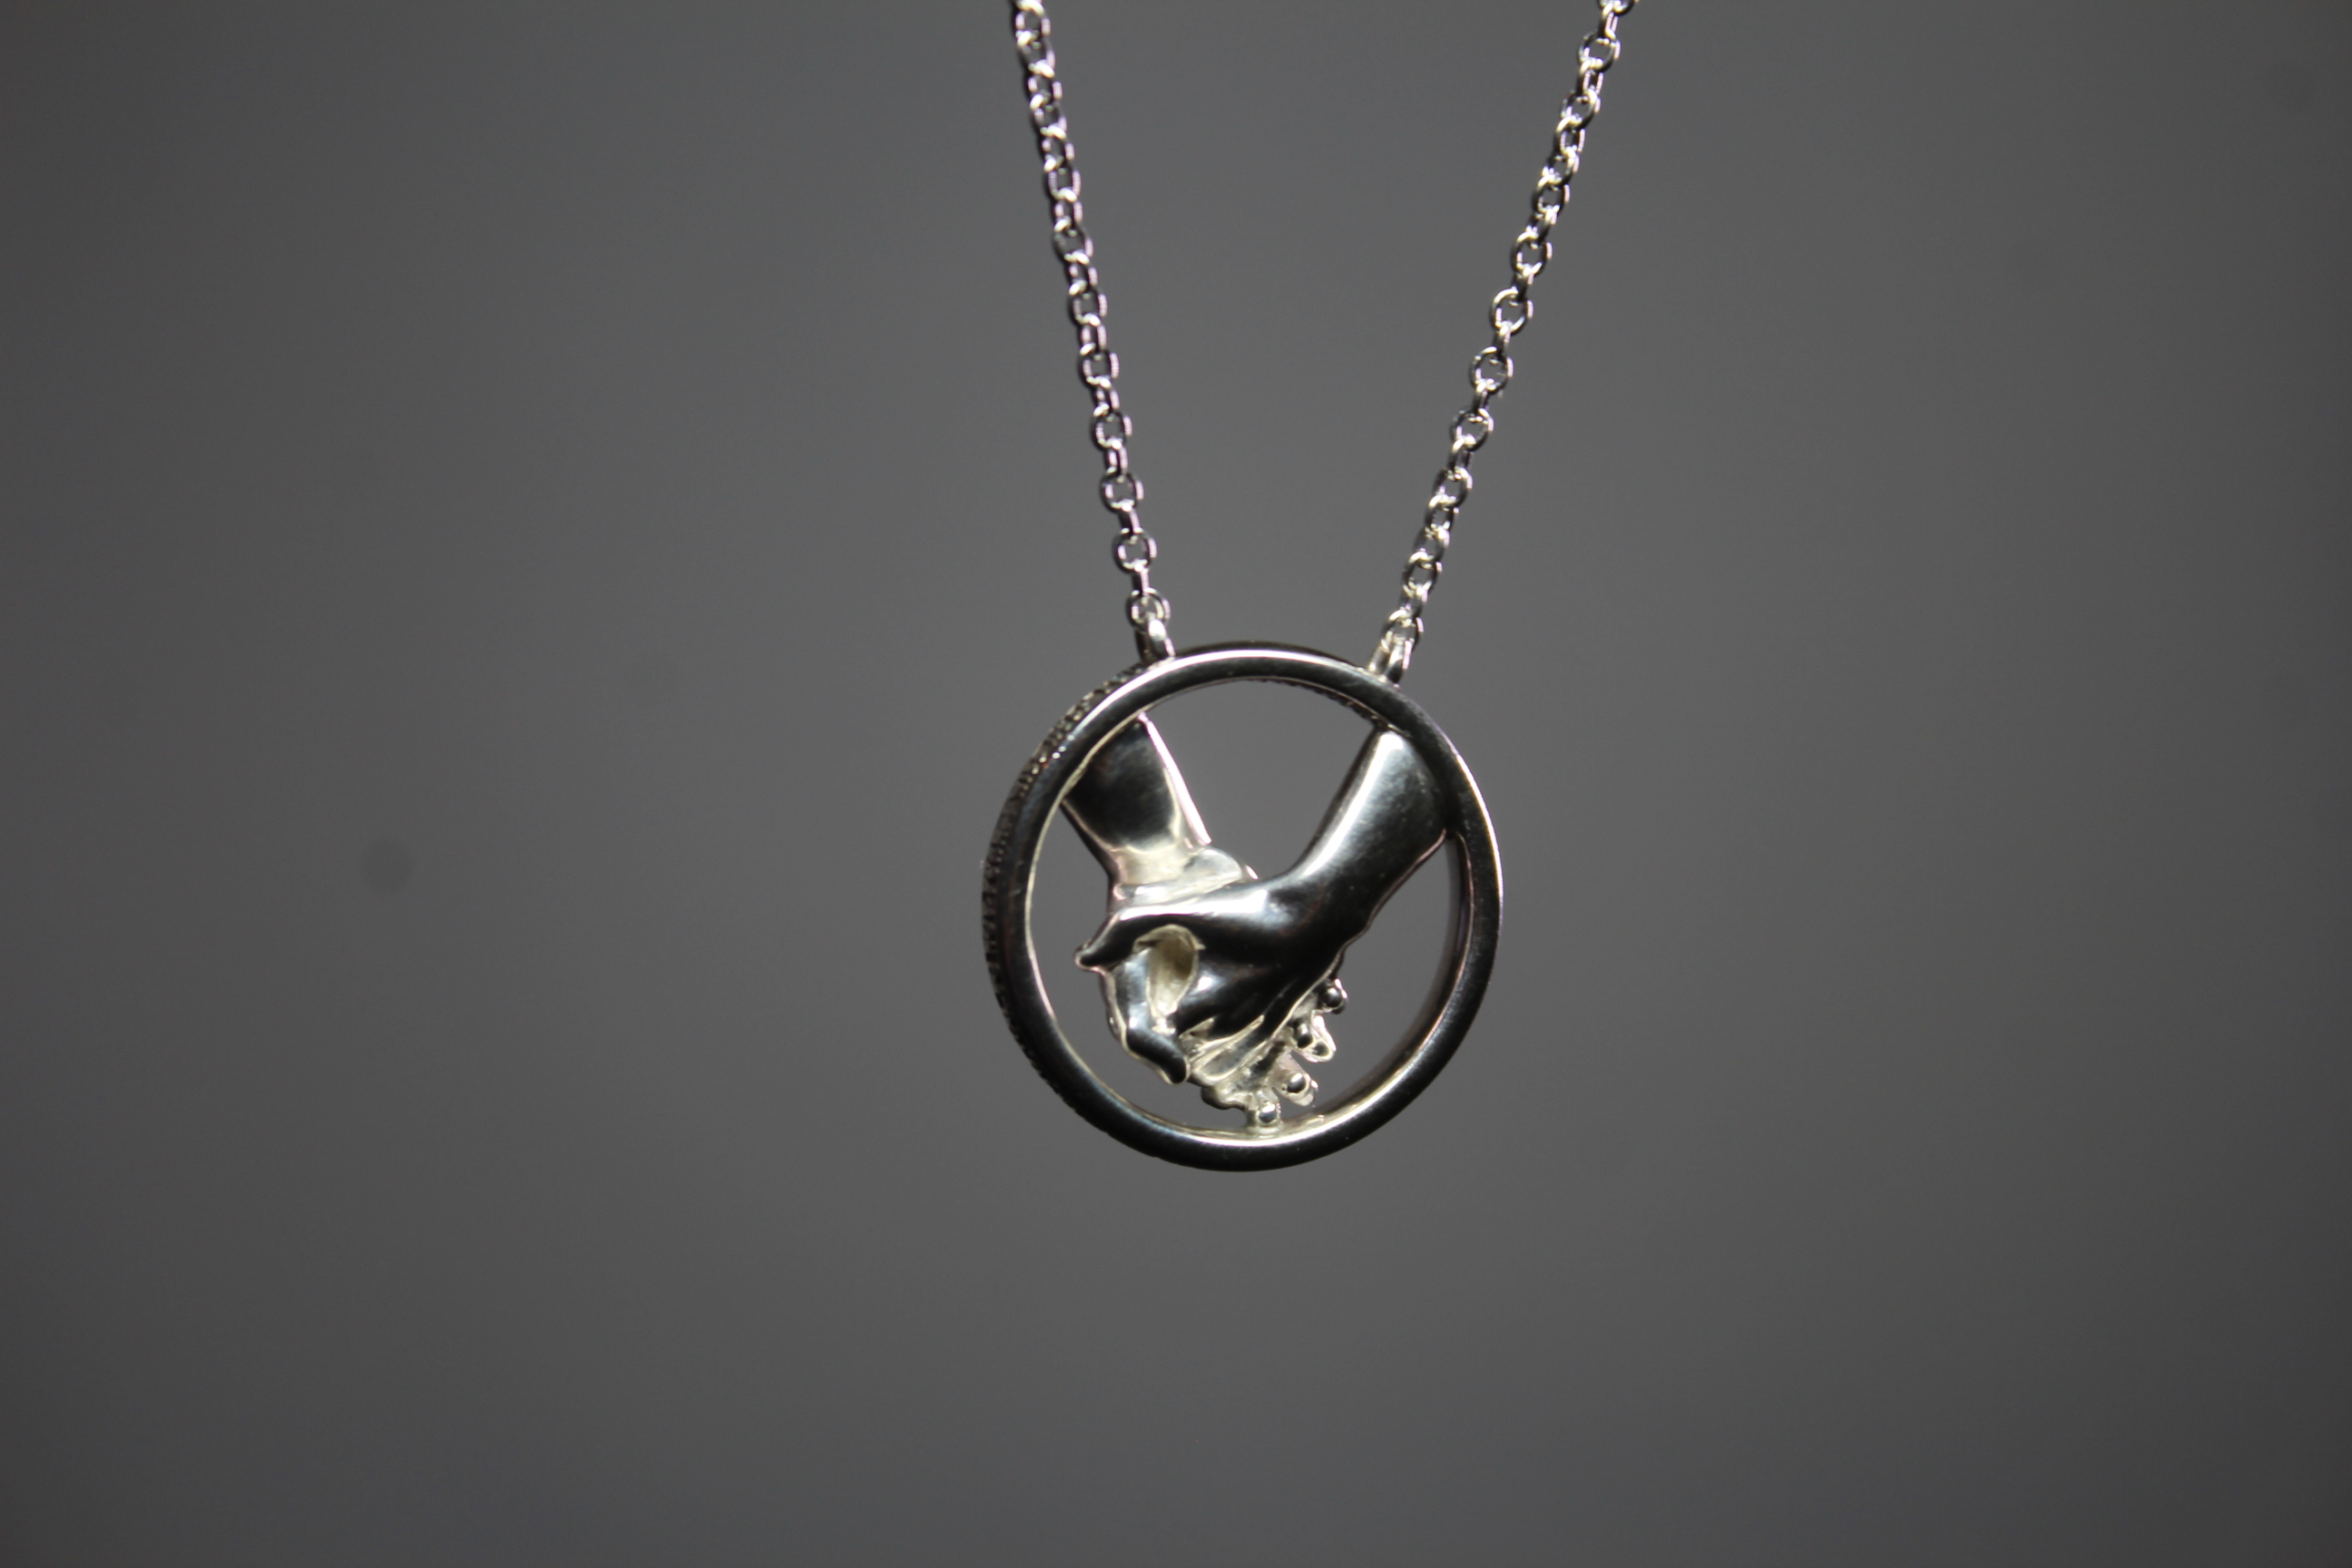 THE SPIRIT LED PENDANT